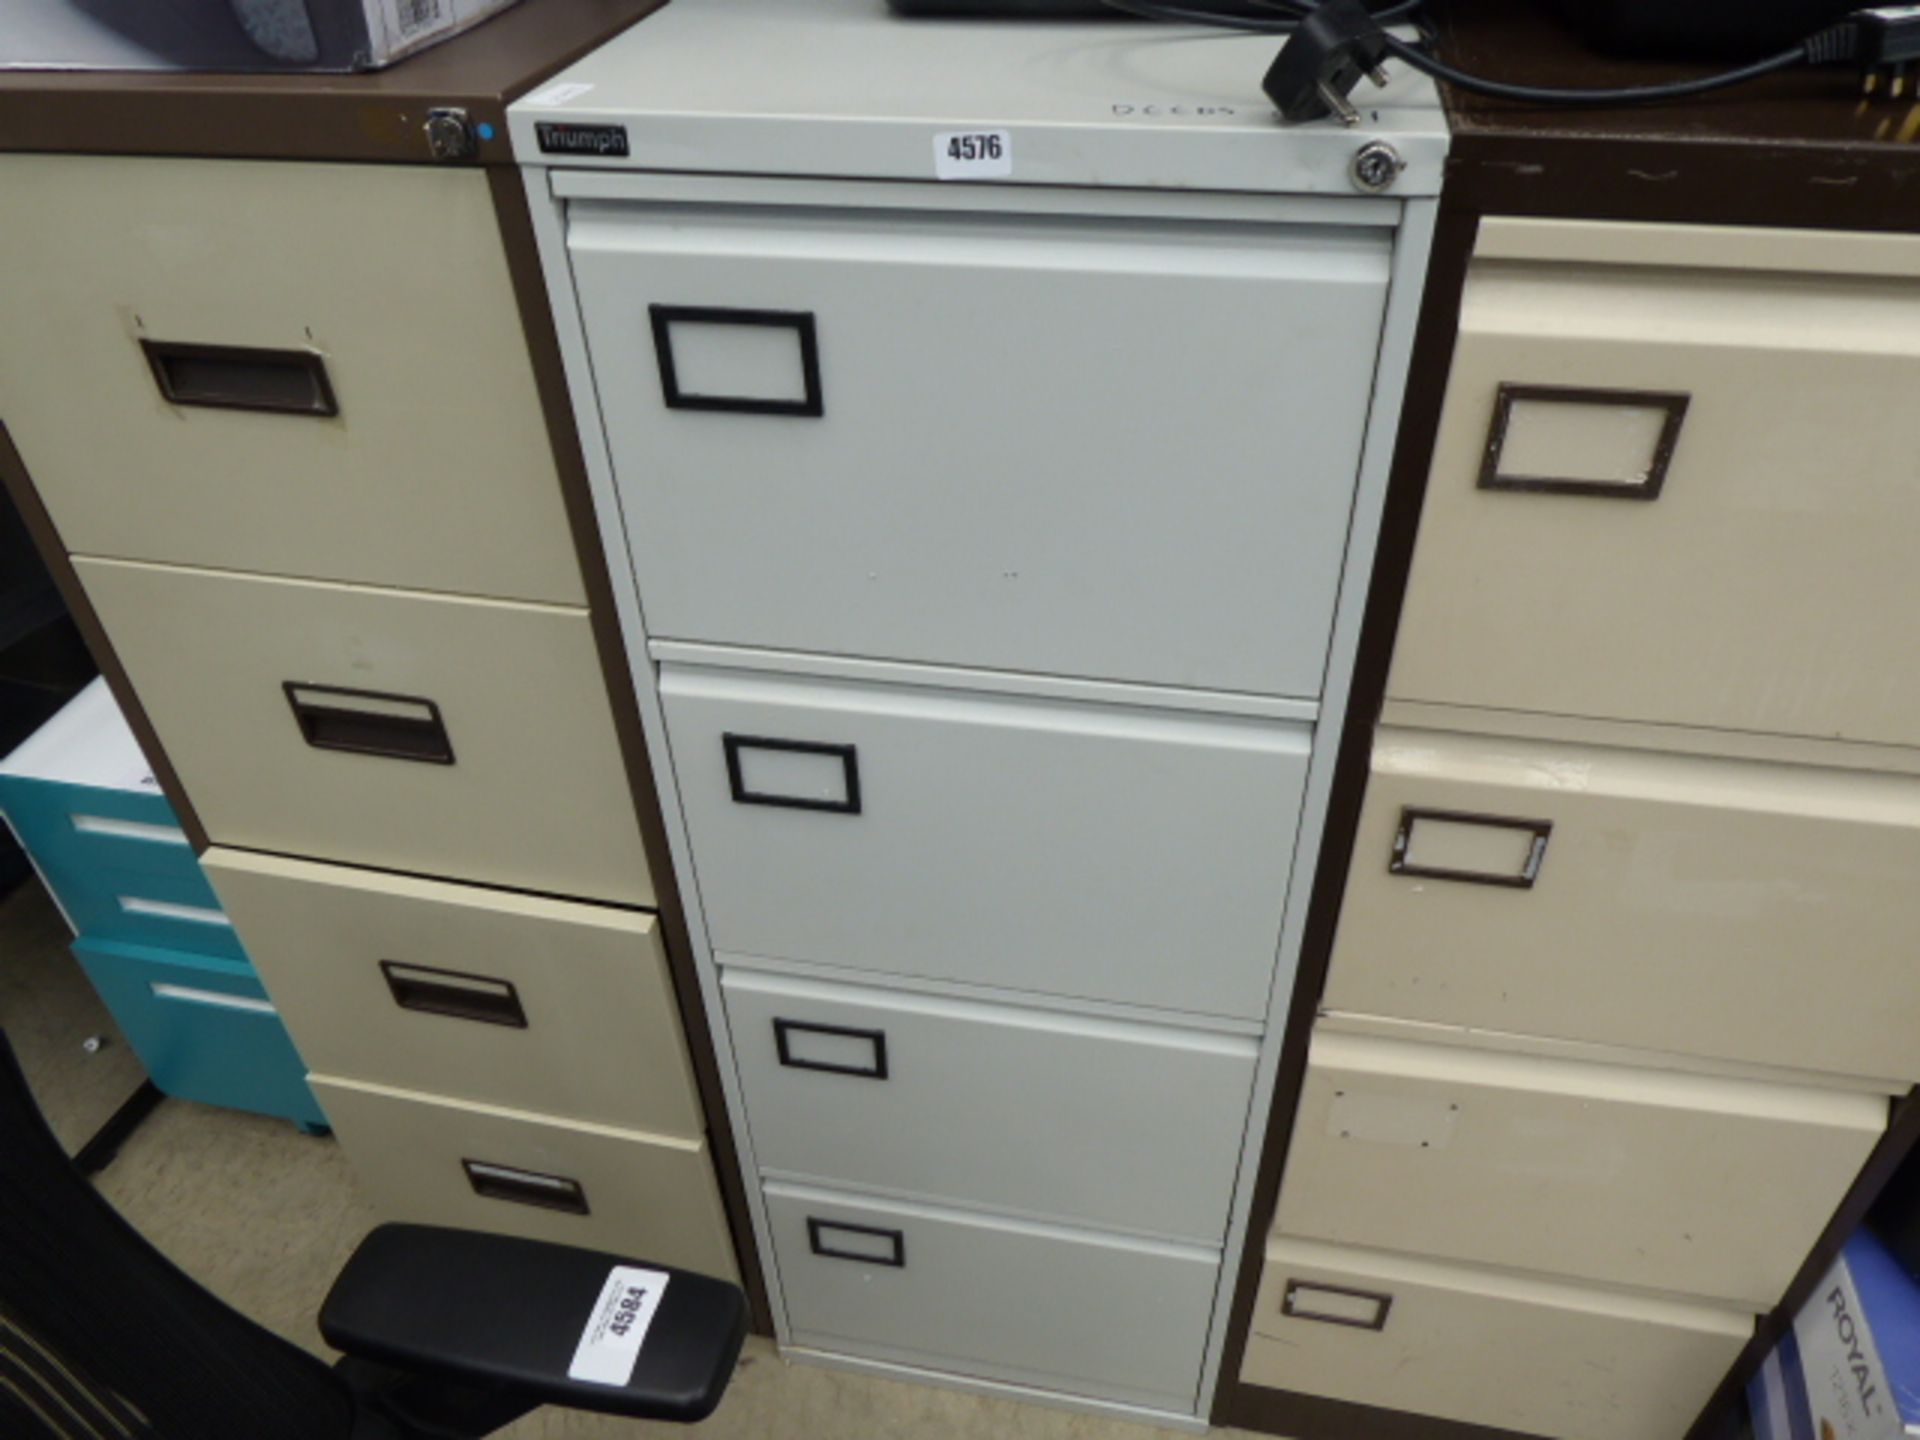 Lot 4576 - Grey metal 4 drawer filing cabinet